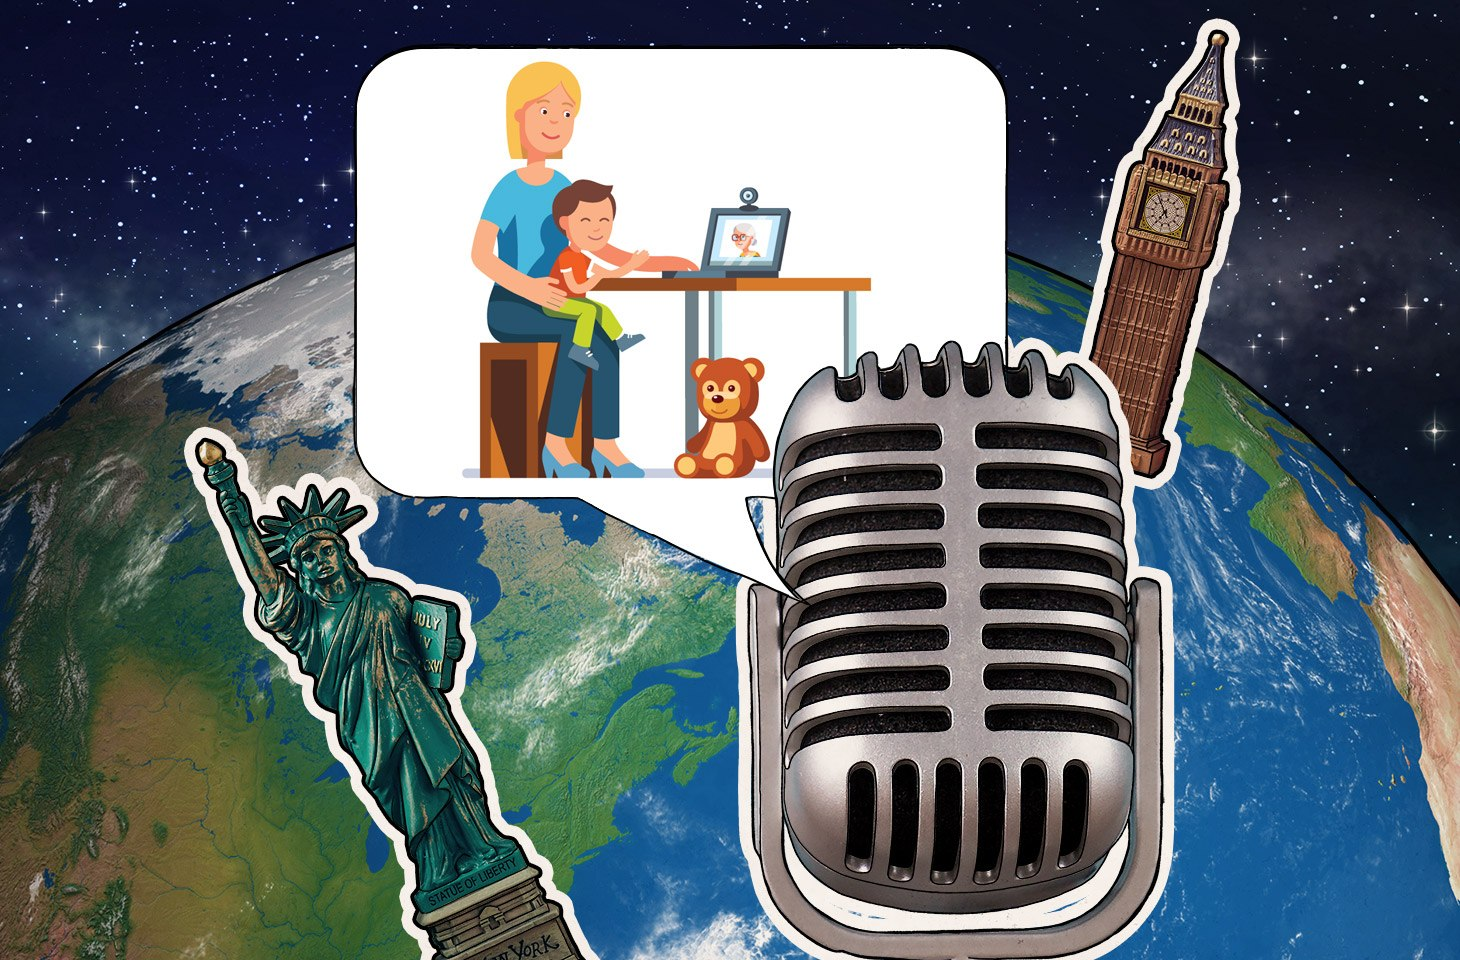 Transatlantic Cable podcast: Raising a digital native